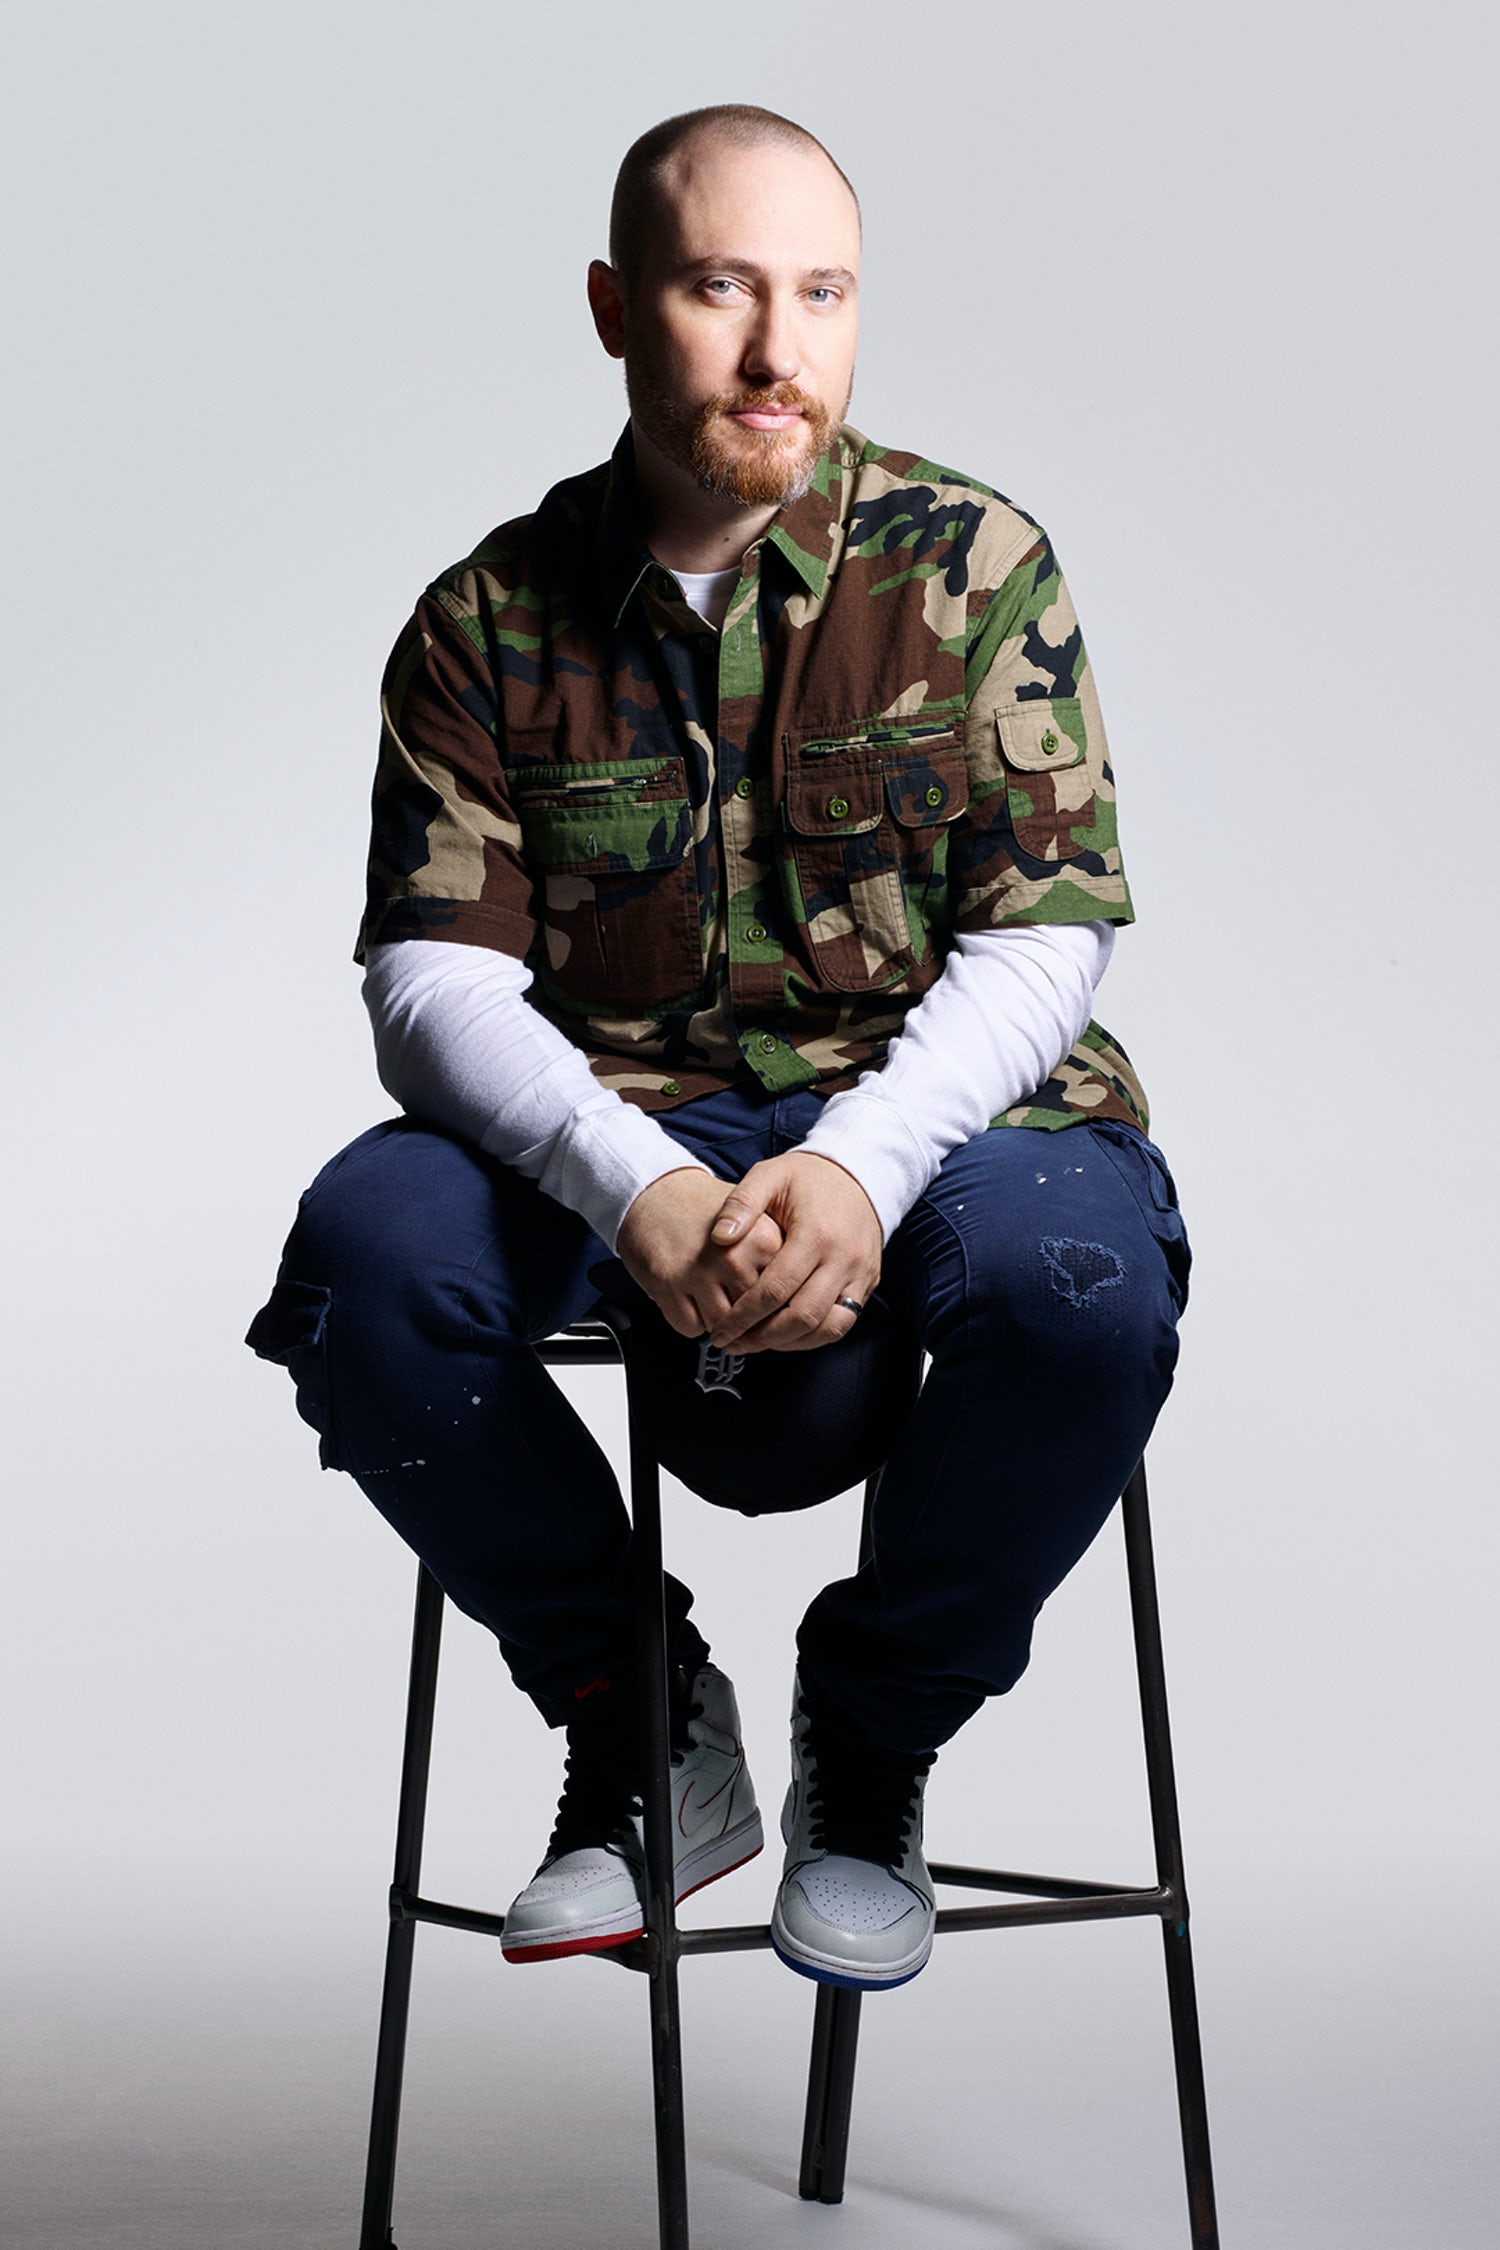 Josh Luber StockX CEO infeed2